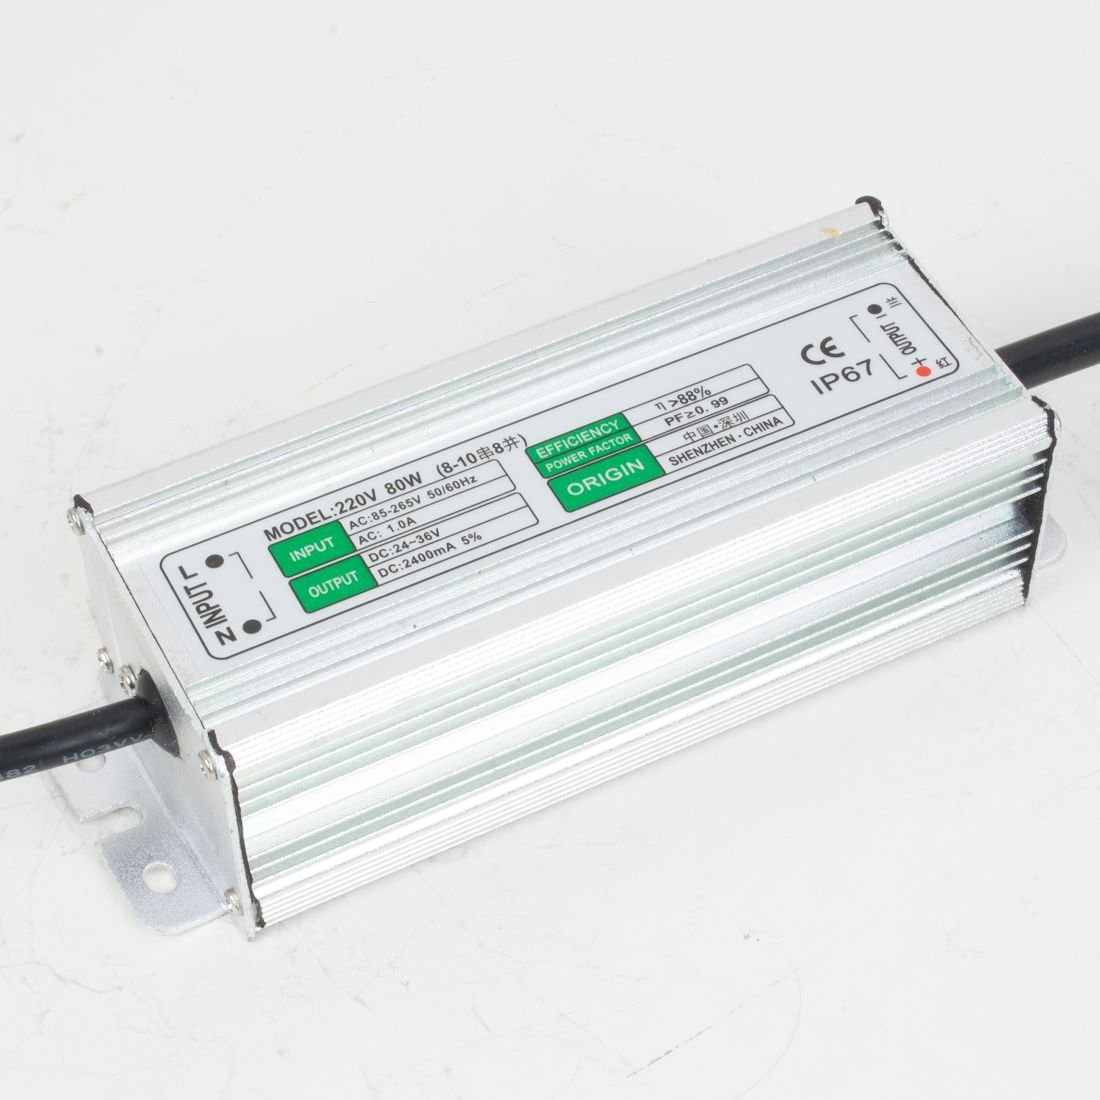 uxcell 80W LED Driver Waterproof IP67 Power